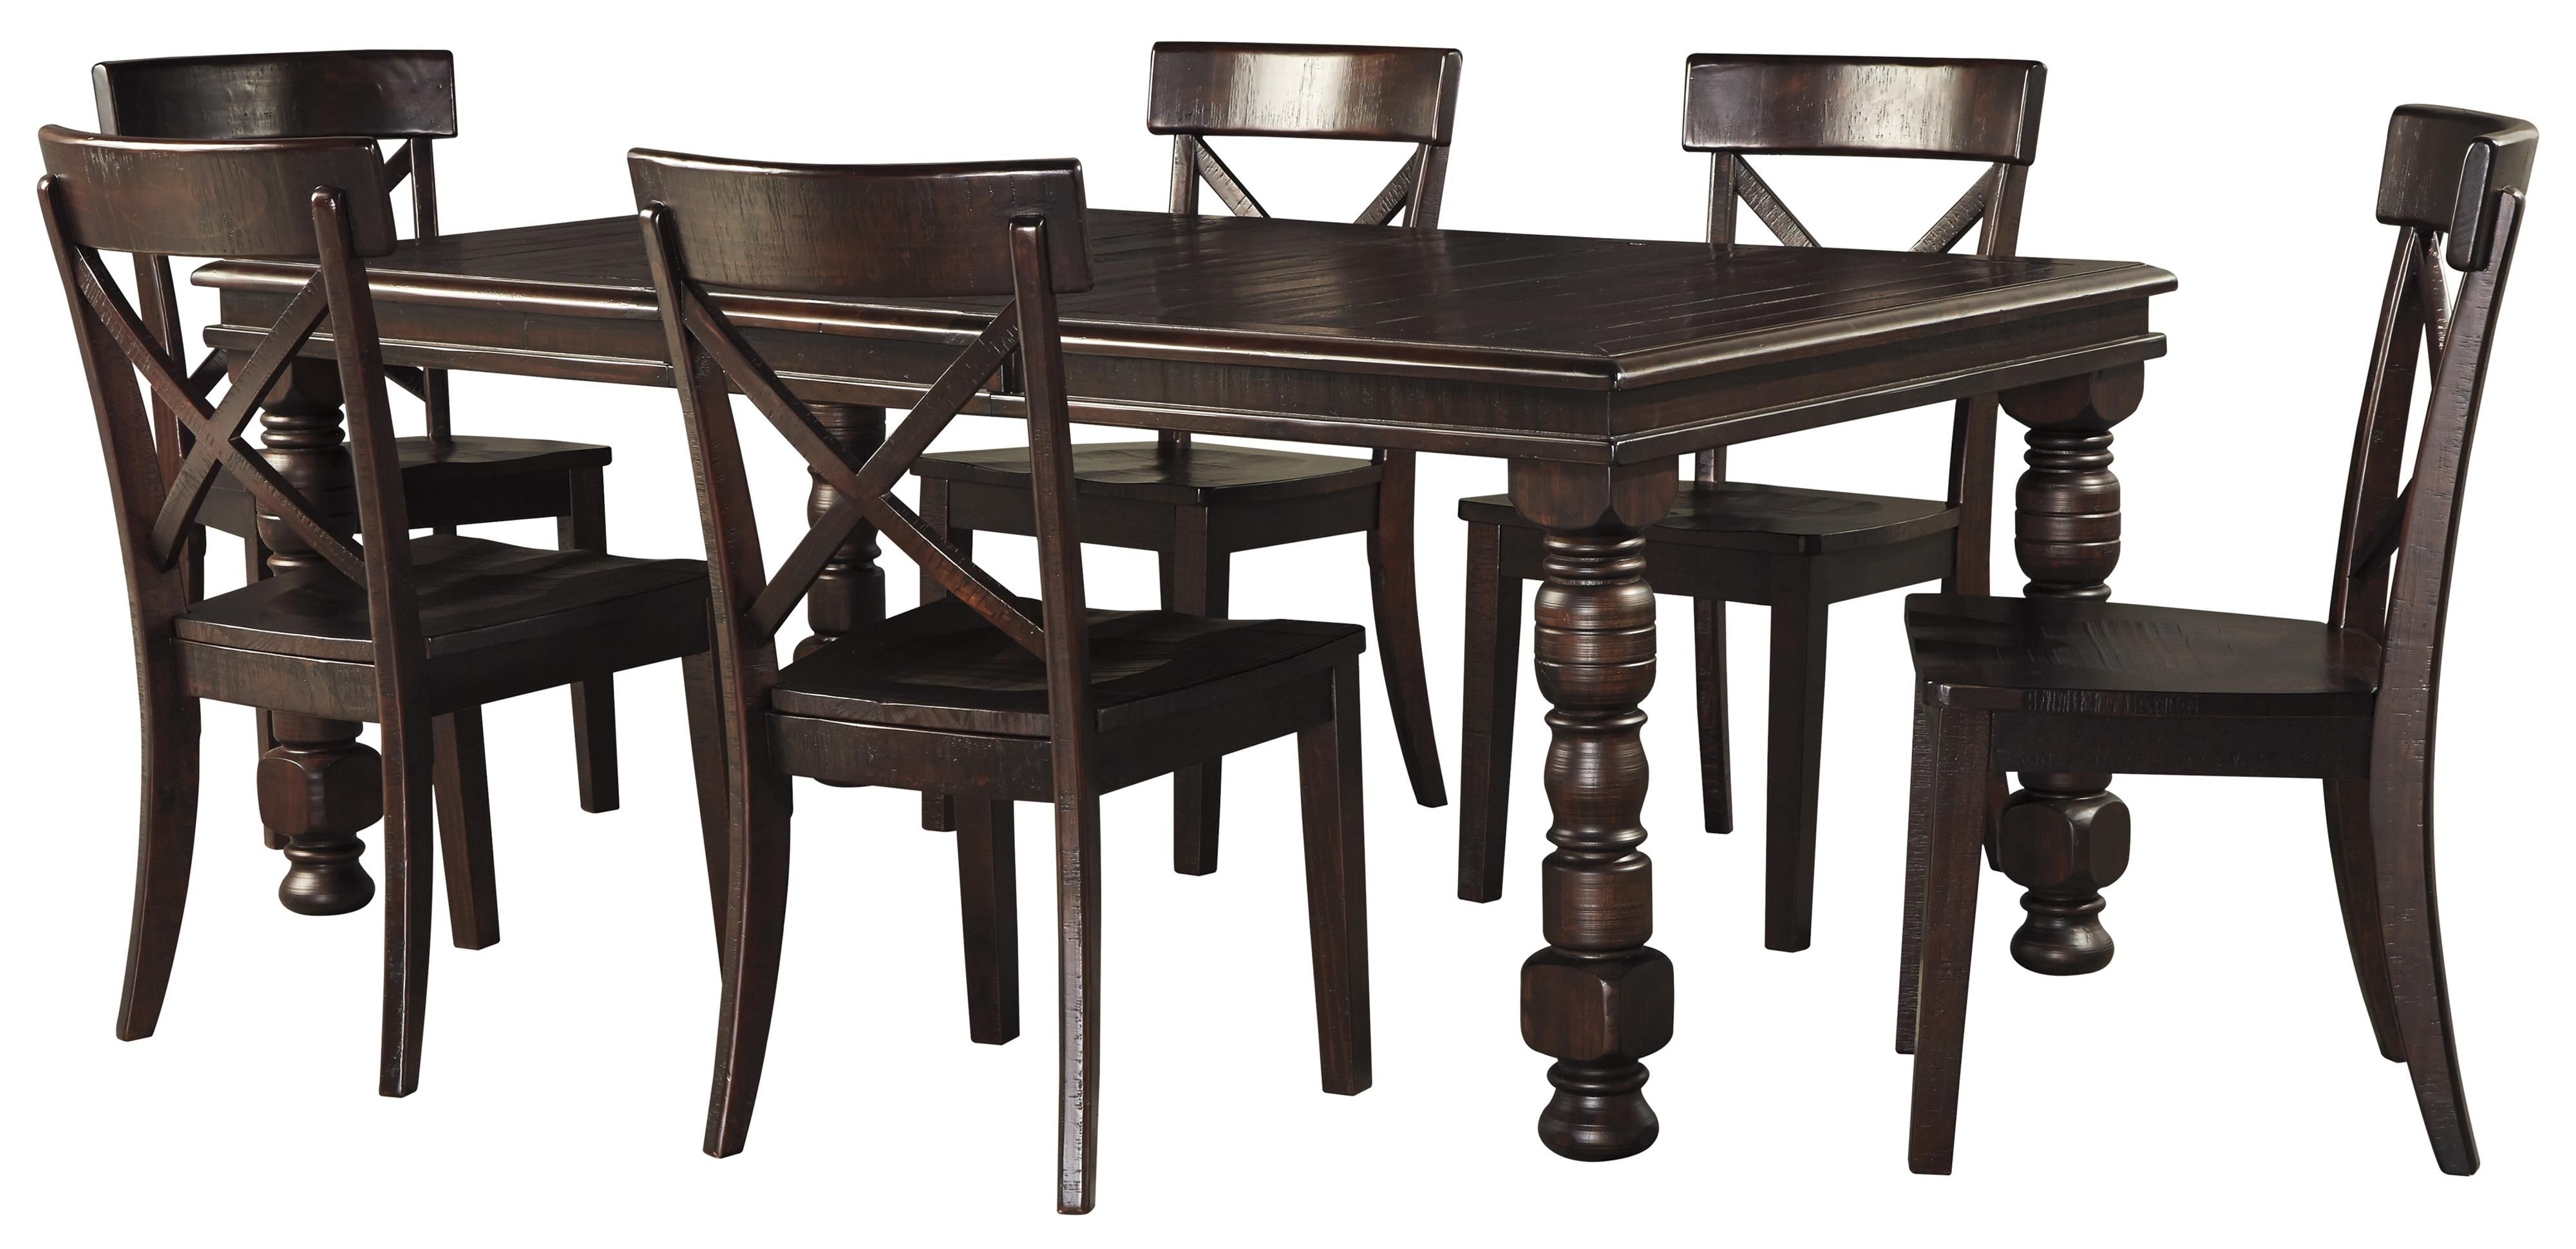 Gerlane 7 Piece Dining Table Setsignature Designashley With Regard To Trendy Laurent 7 Piece Rectangle Dining Sets With Wood Chairs (View 8 of 25)